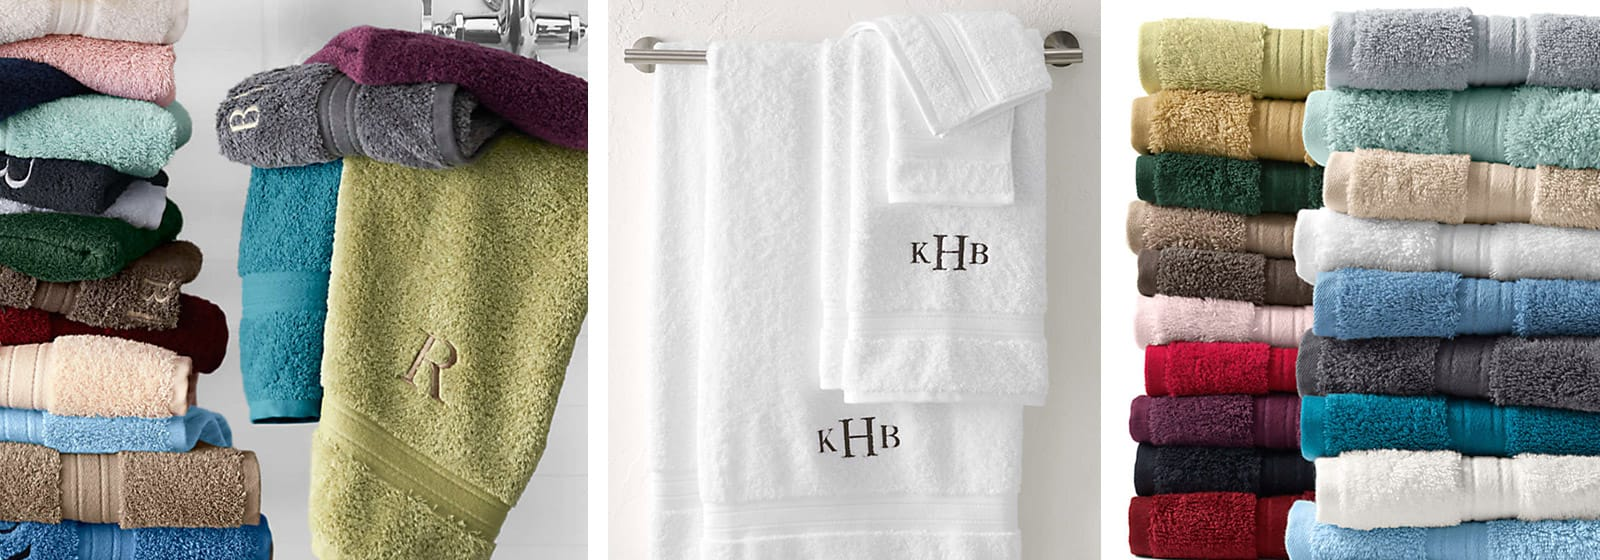 Best Christmas Household Gifts: Towels, Slippers, and More